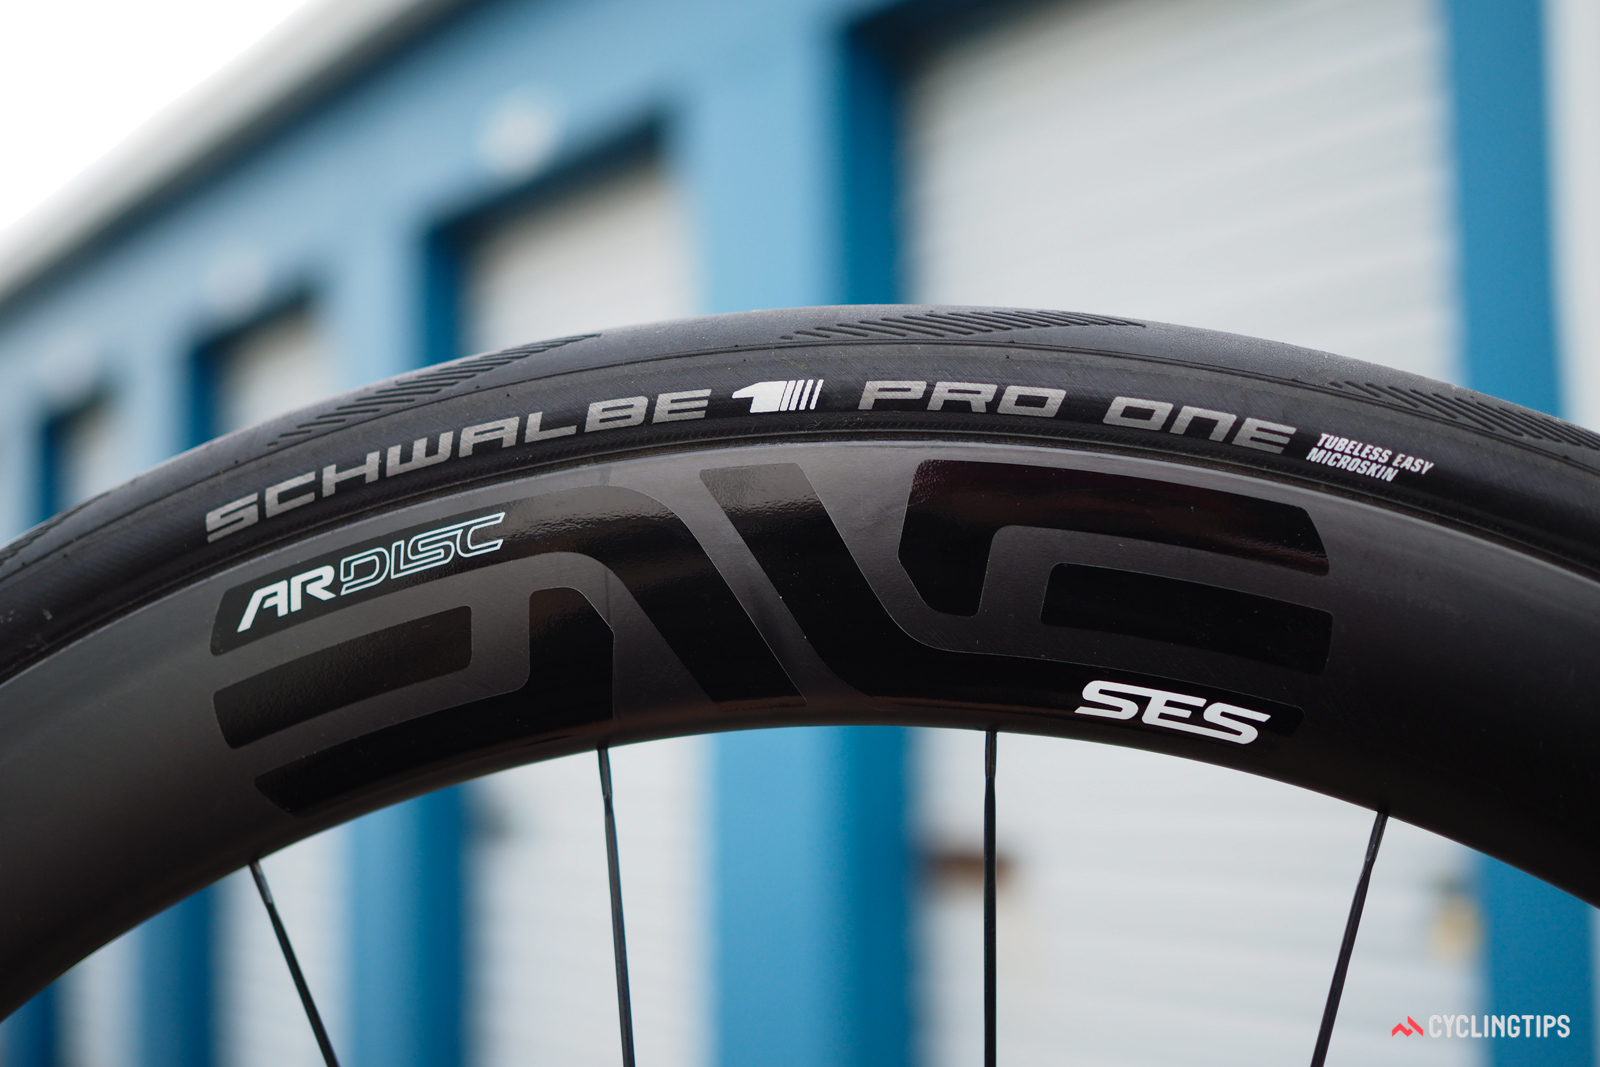 I tested the Enve SES 4.5 AR Disc wheels with both Schwalbe Pro One Tubeless and Specialized S-Works Tubeless tires. Both models are marked as 28mm-wide, but puff up to 31mm when mounted to these ultra-fat rims.